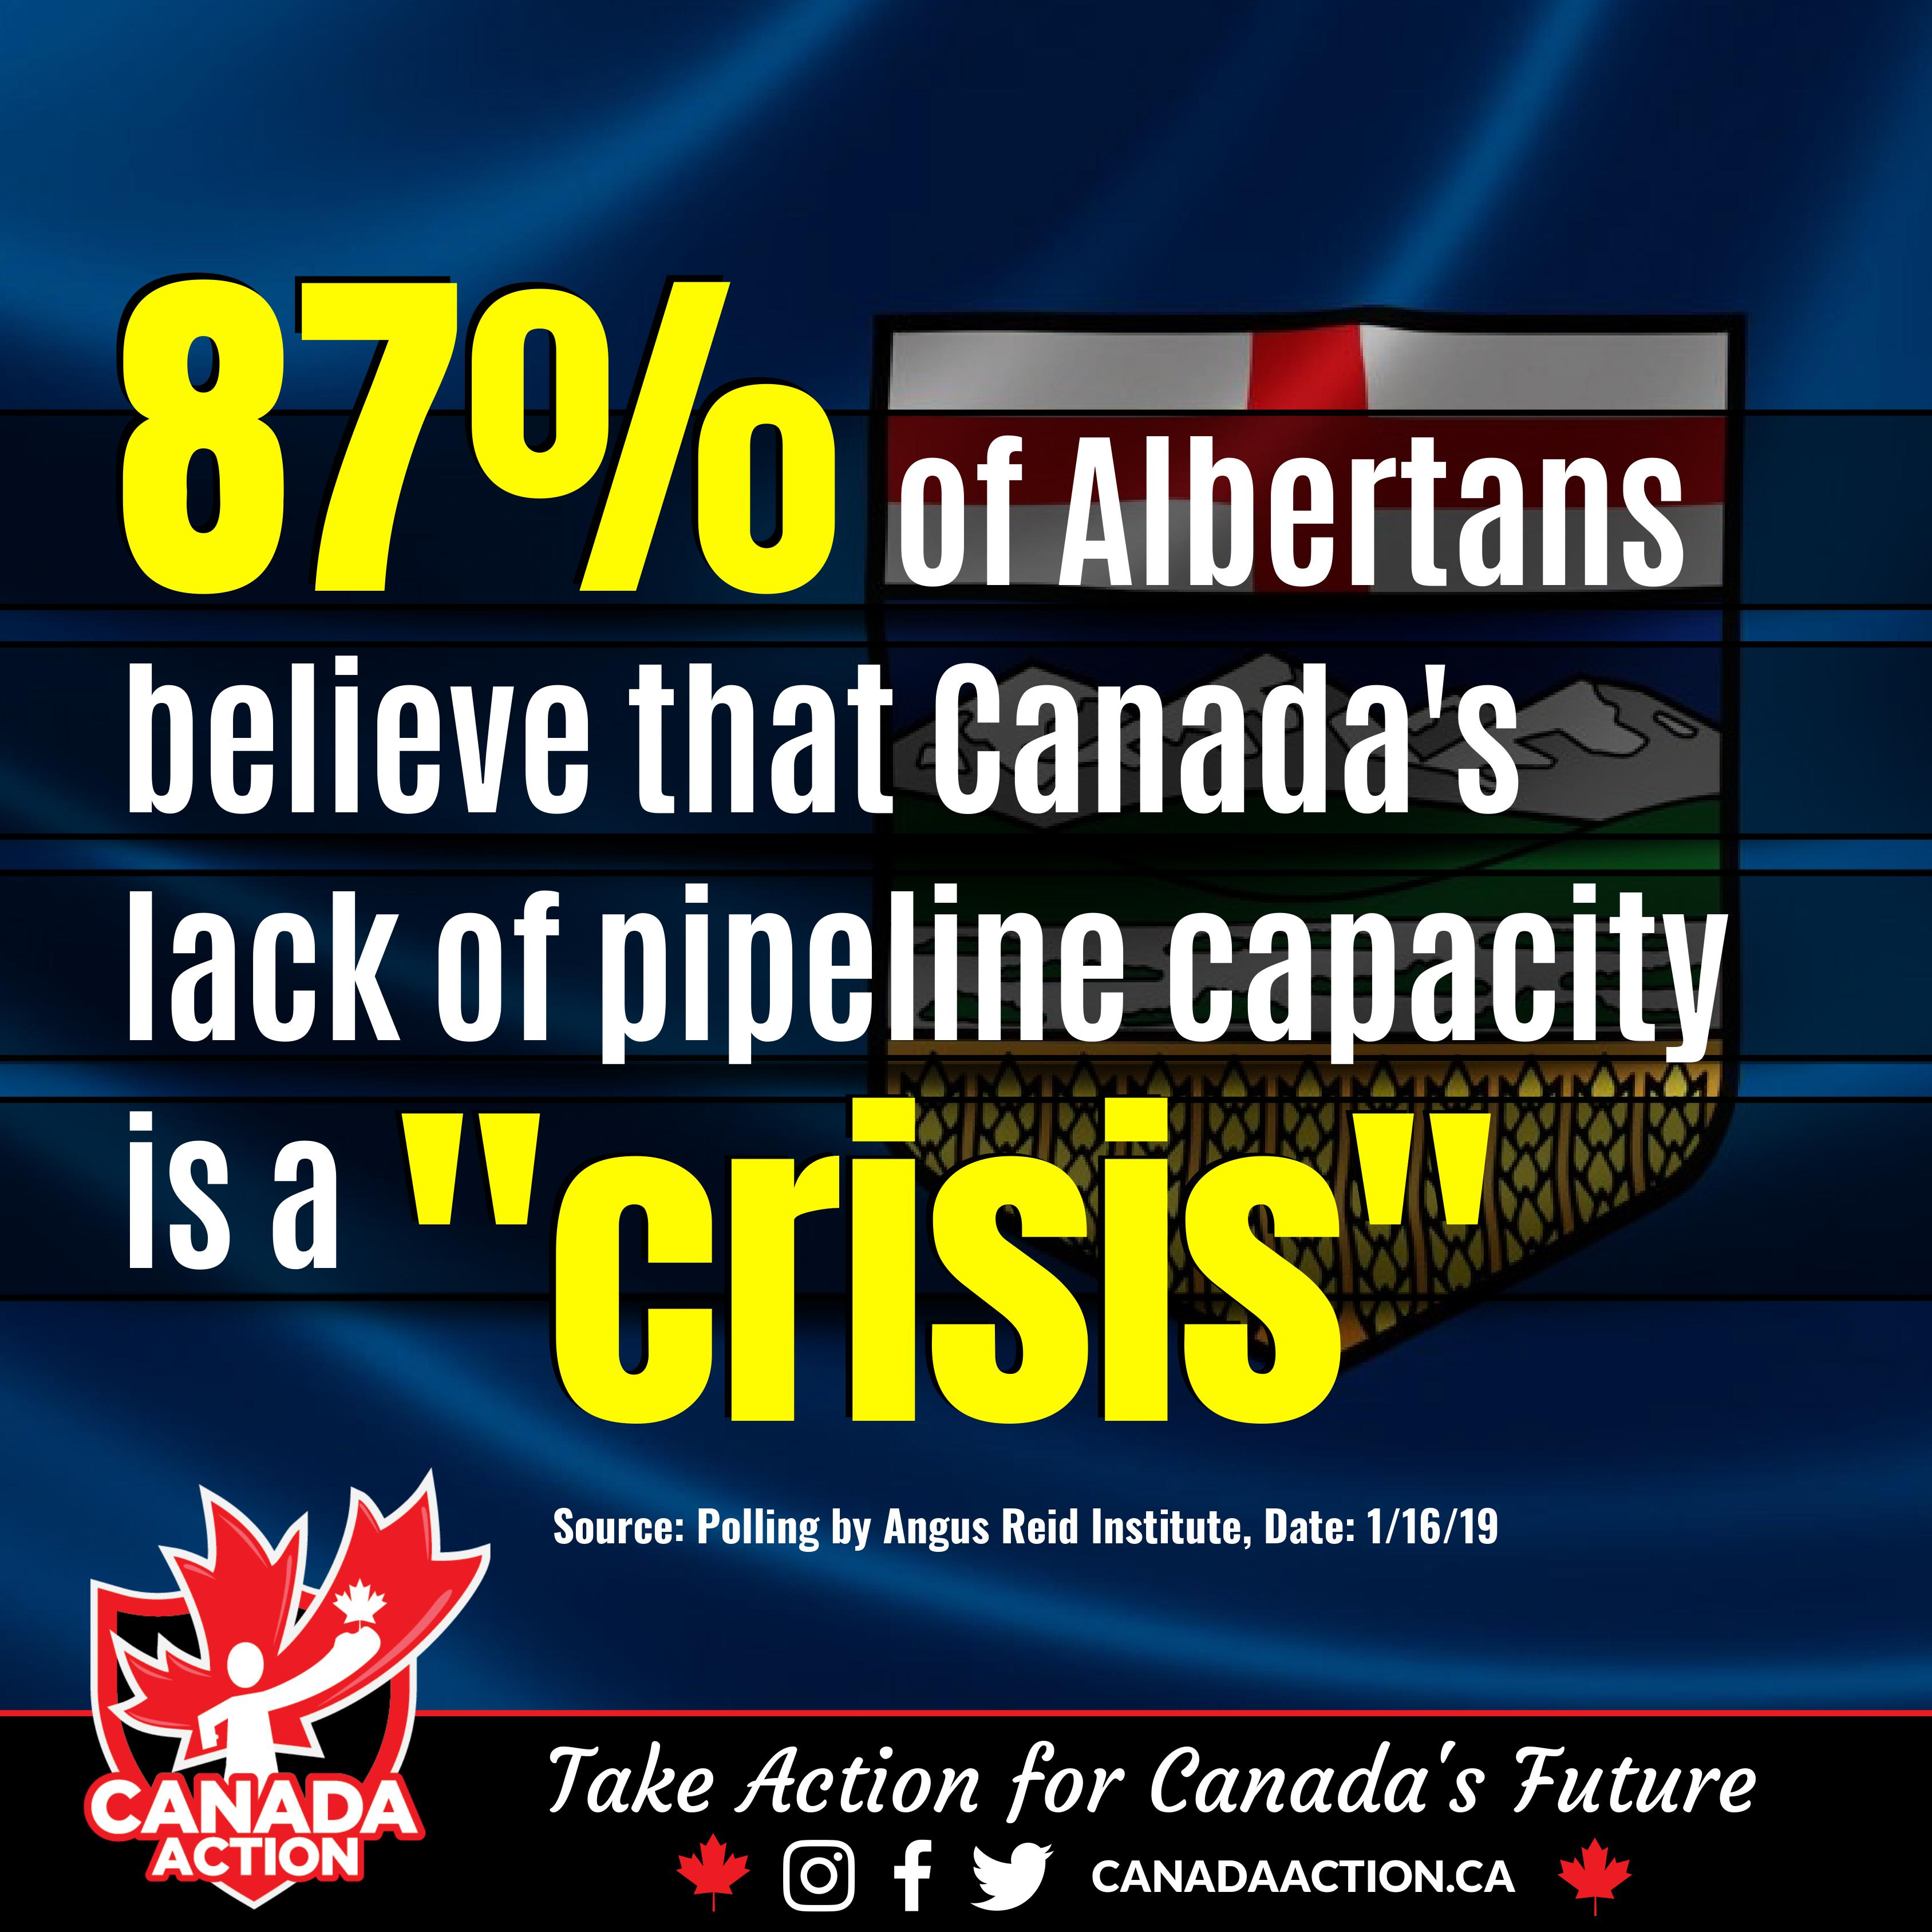 Angus Reid Poll Albertans 87% Feel Lack of Pipeline Capacity a Crisis